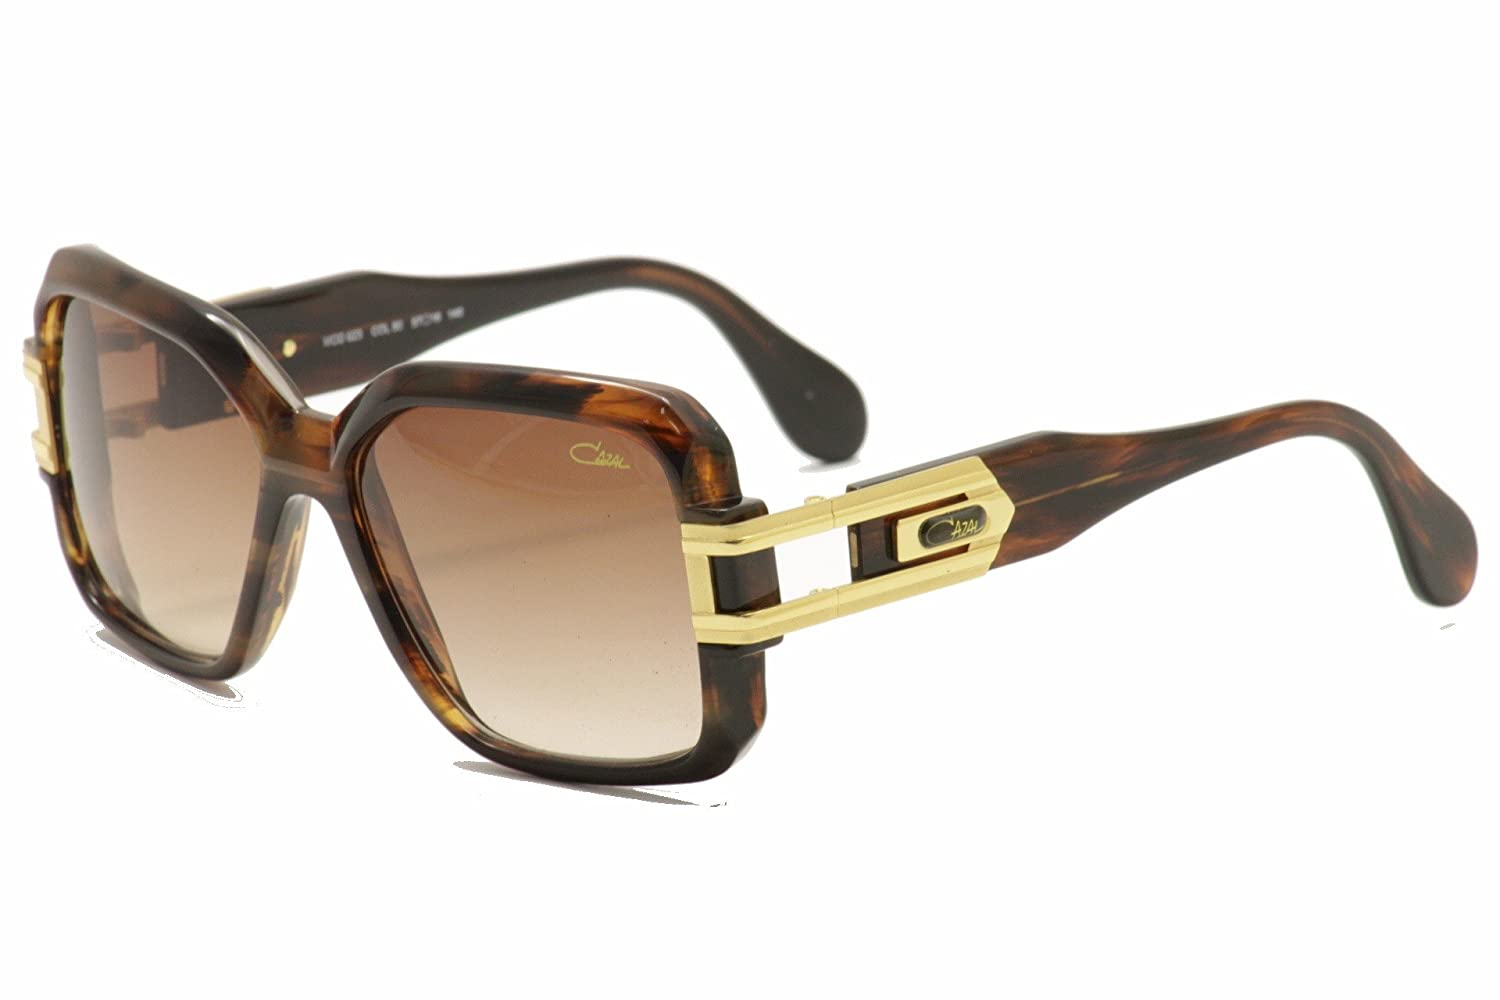 72d6322e437 Amazon.com  Cazal 623-001 SG Square Sunglasses